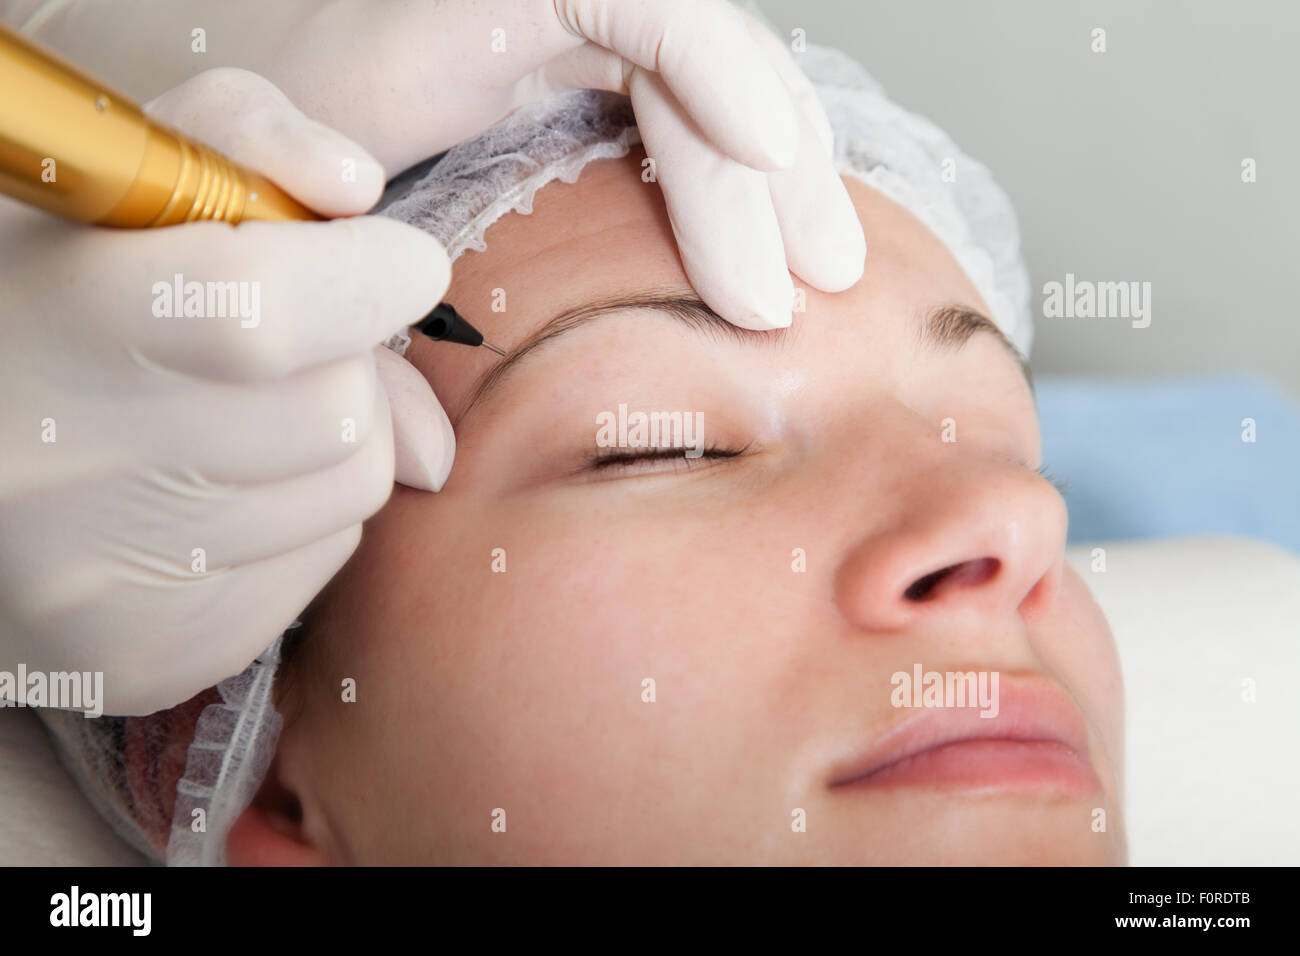 Maquillage permanent rendant Cosmetologist Photo Stock